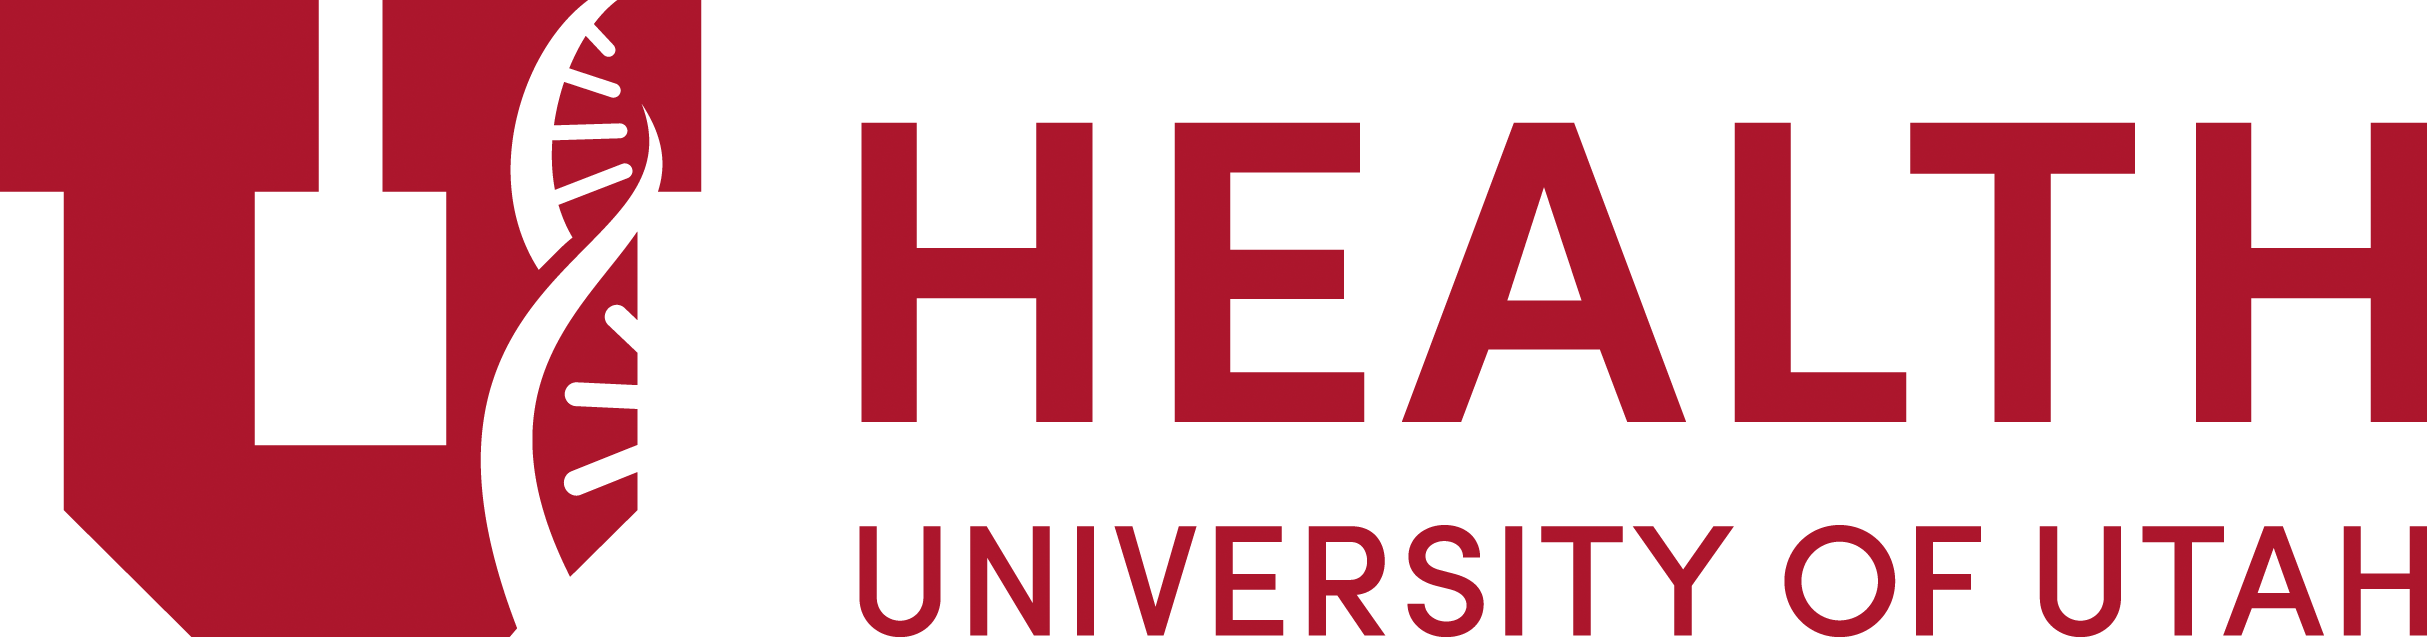 University of Utah, School of Medicine, Division of Physician Assistant Studies